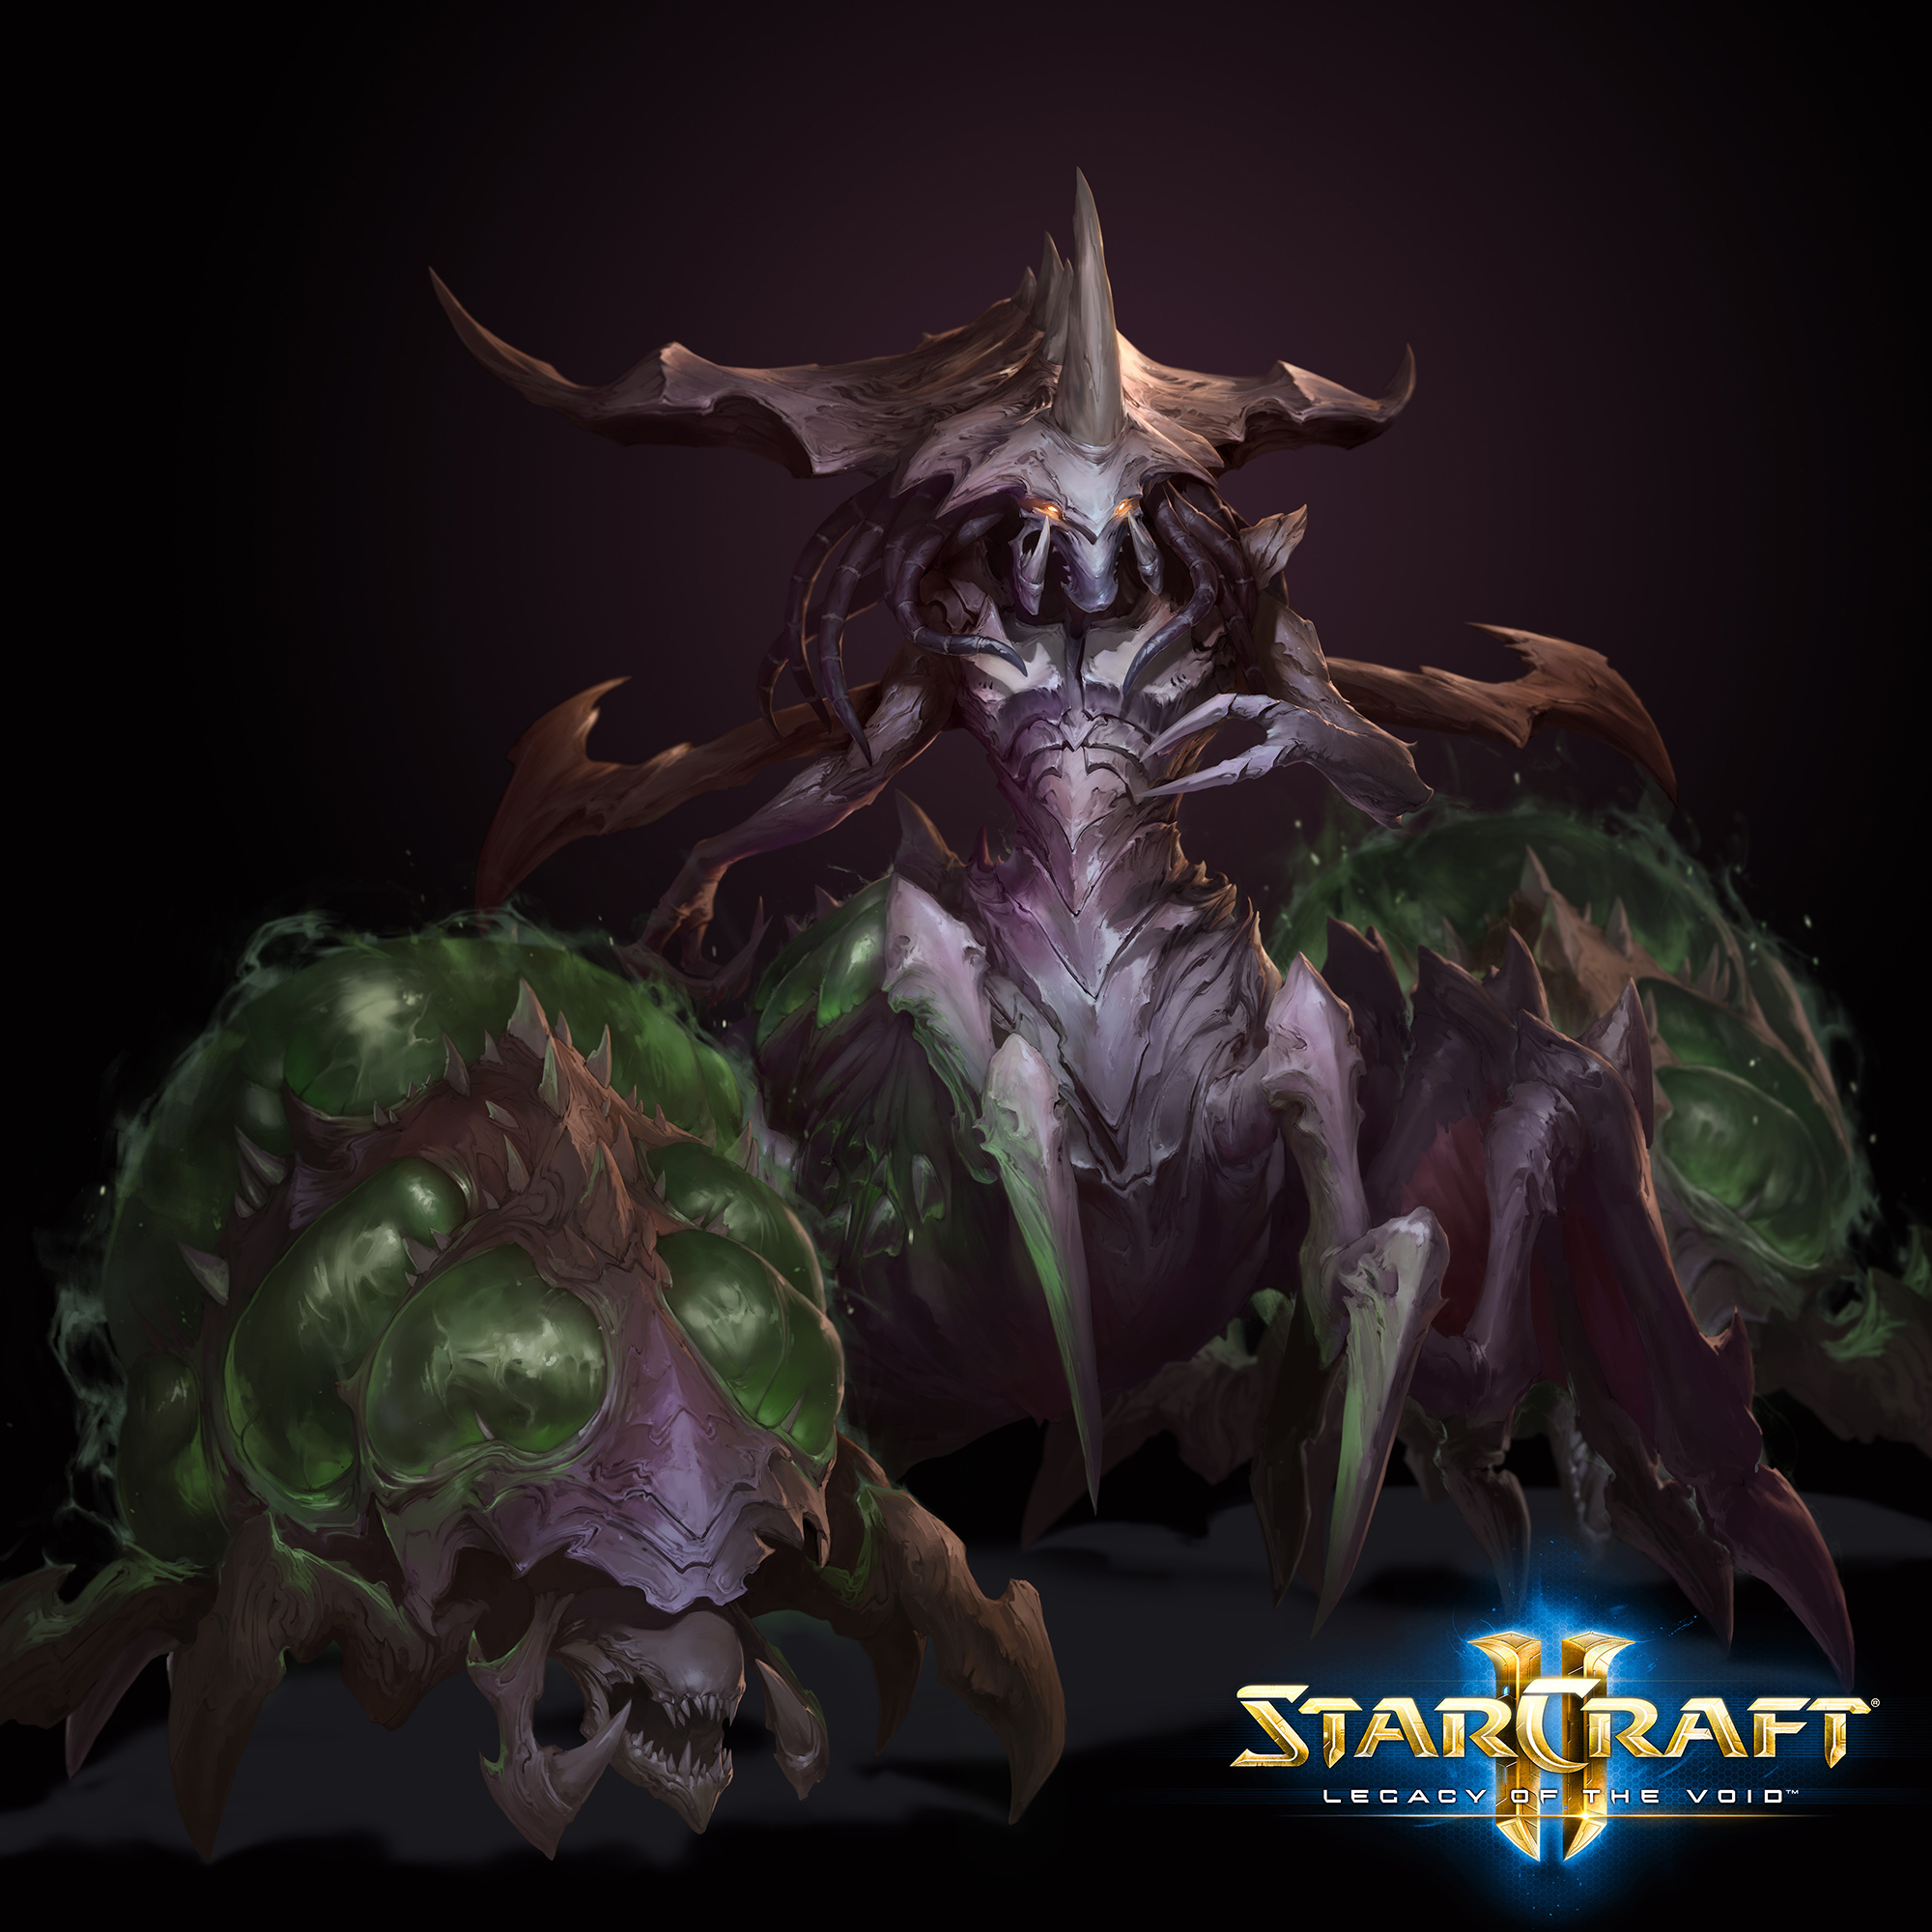 1446883559-starcraft-legacy-of-the-void-co-op-commander-zagara